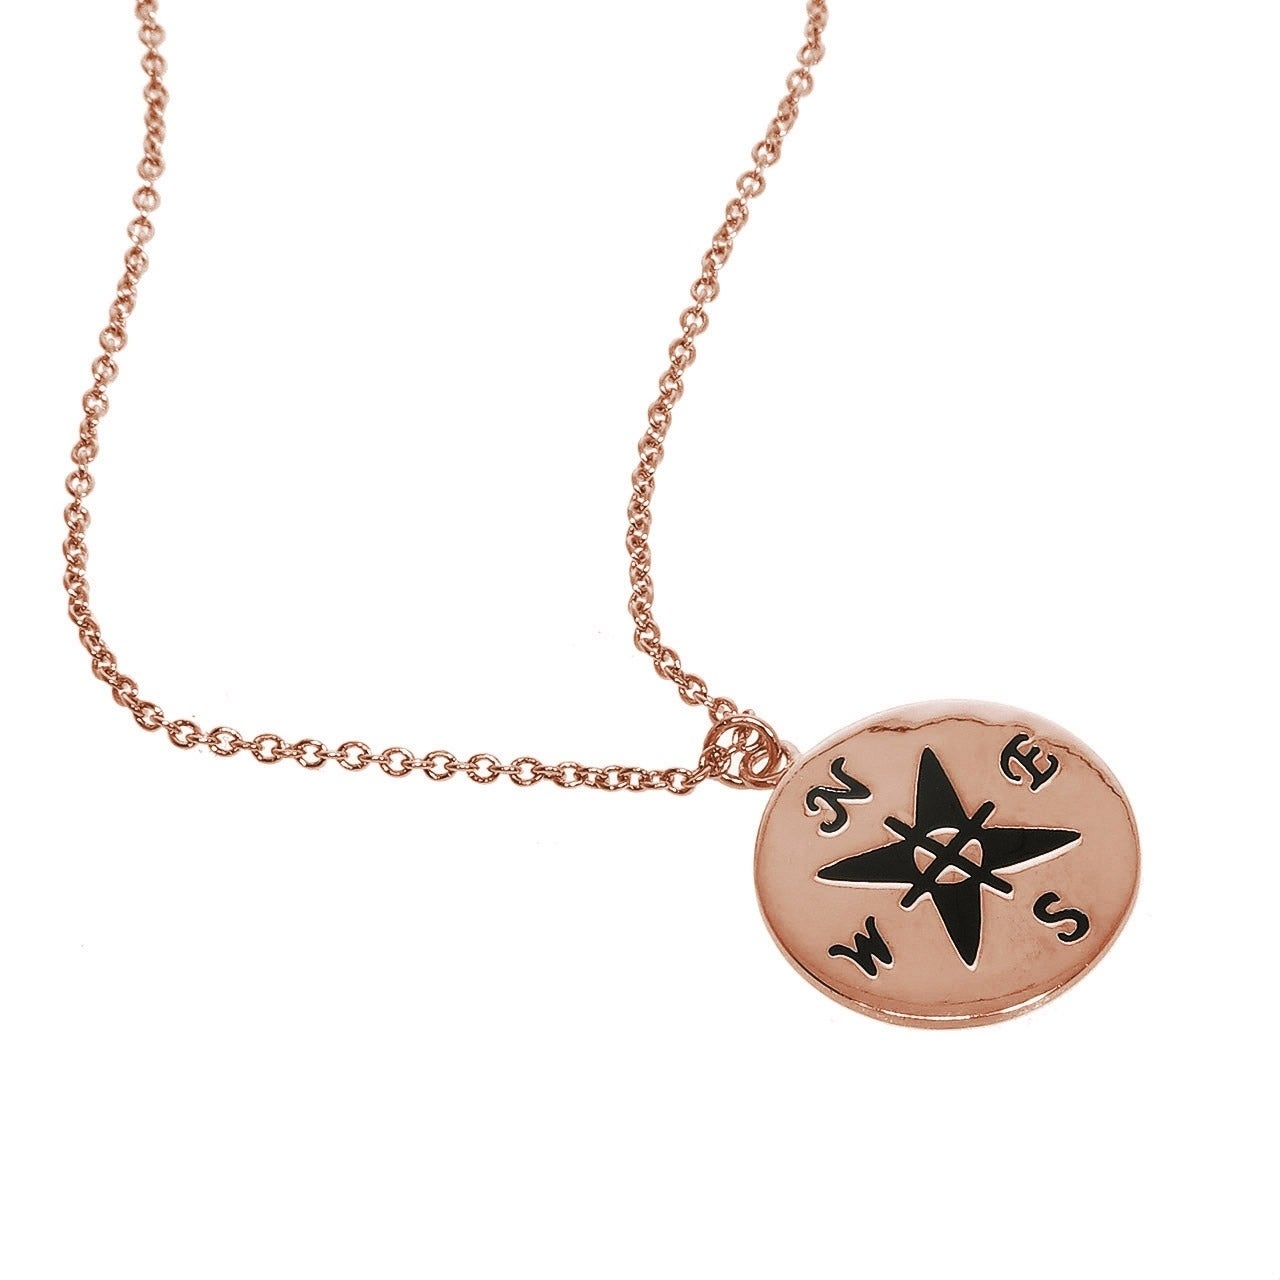 75dd2a496 Shop Eternally Haute 14k Rose Gold Plated Engraved Compass Necklace - Free  Shipping On Orders Over $45 - Overstock - 20612078